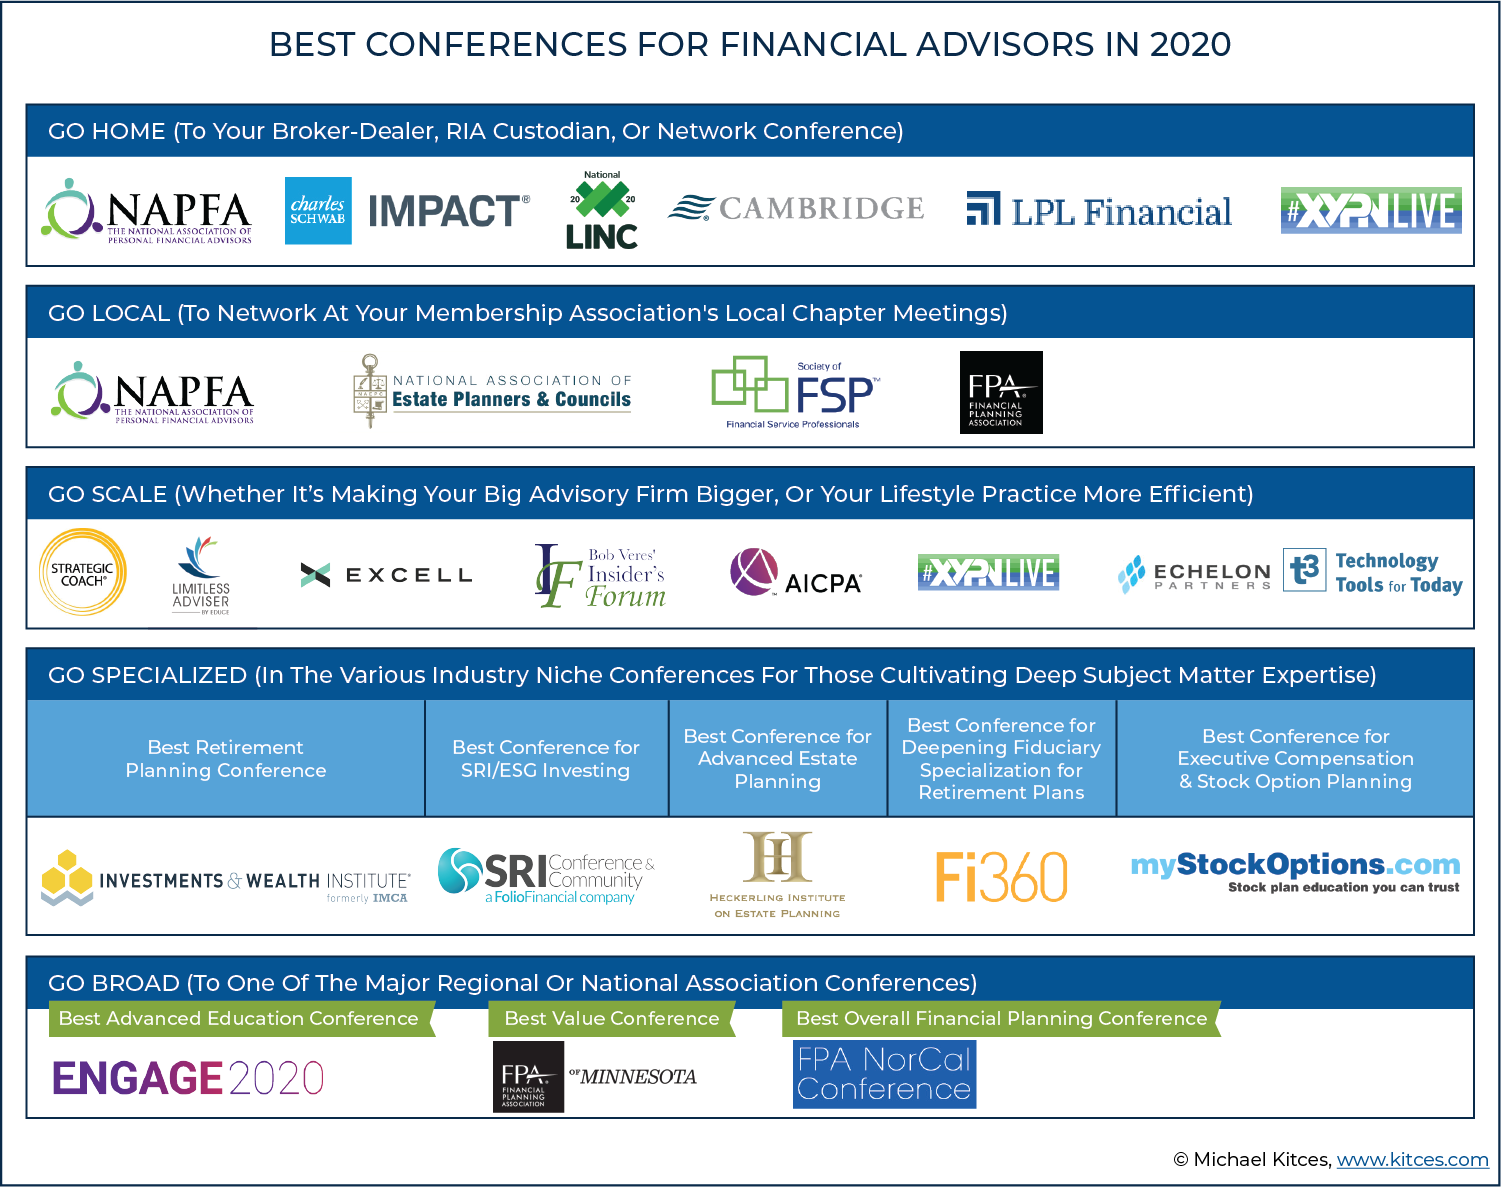 Best Ira Accounts 2020.20 Best Conferences For Top Financial Advisors In 2020